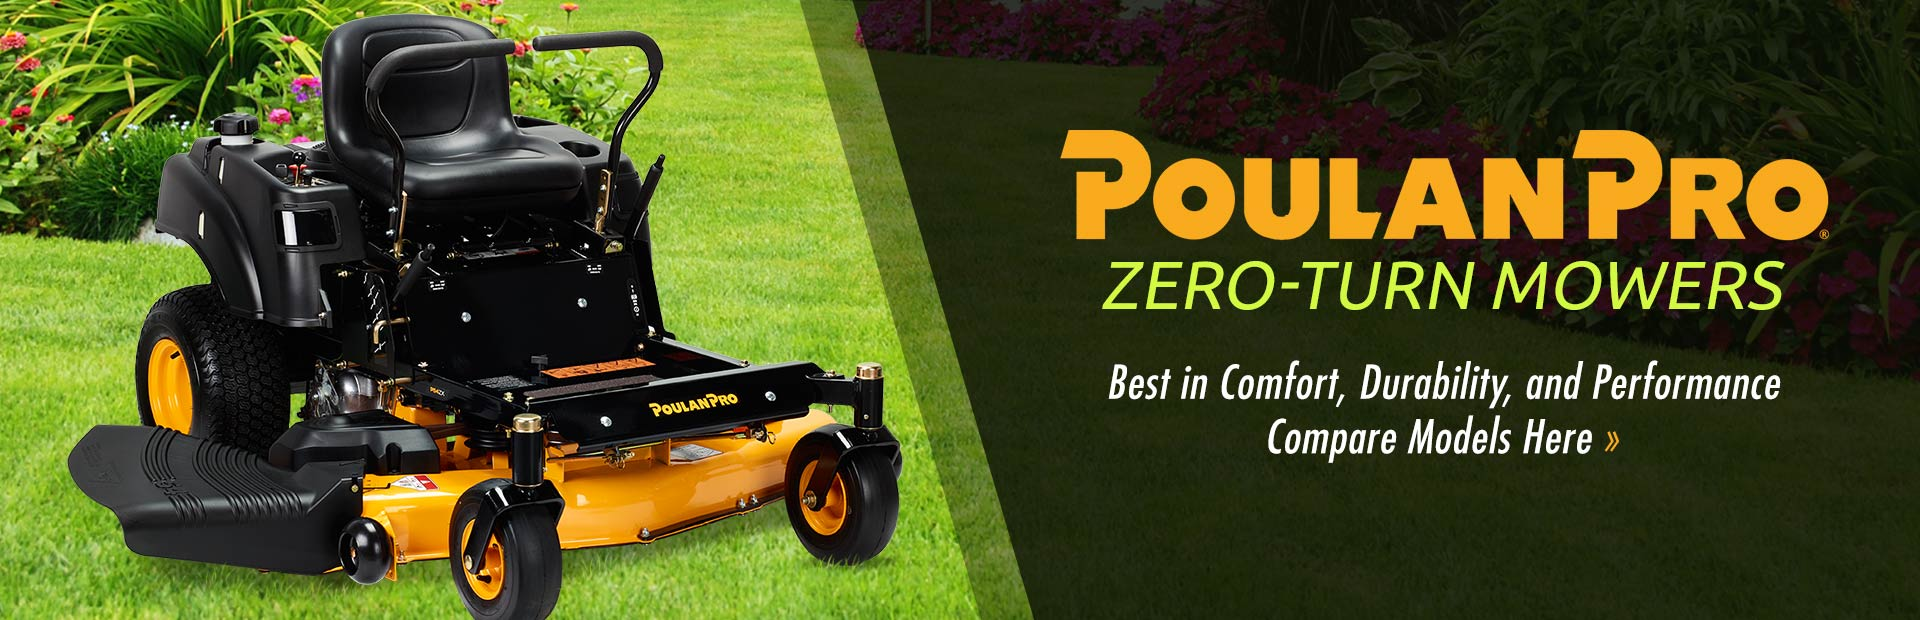 Poulan Pro Zero-Turn Mowers: Click here to view the models.